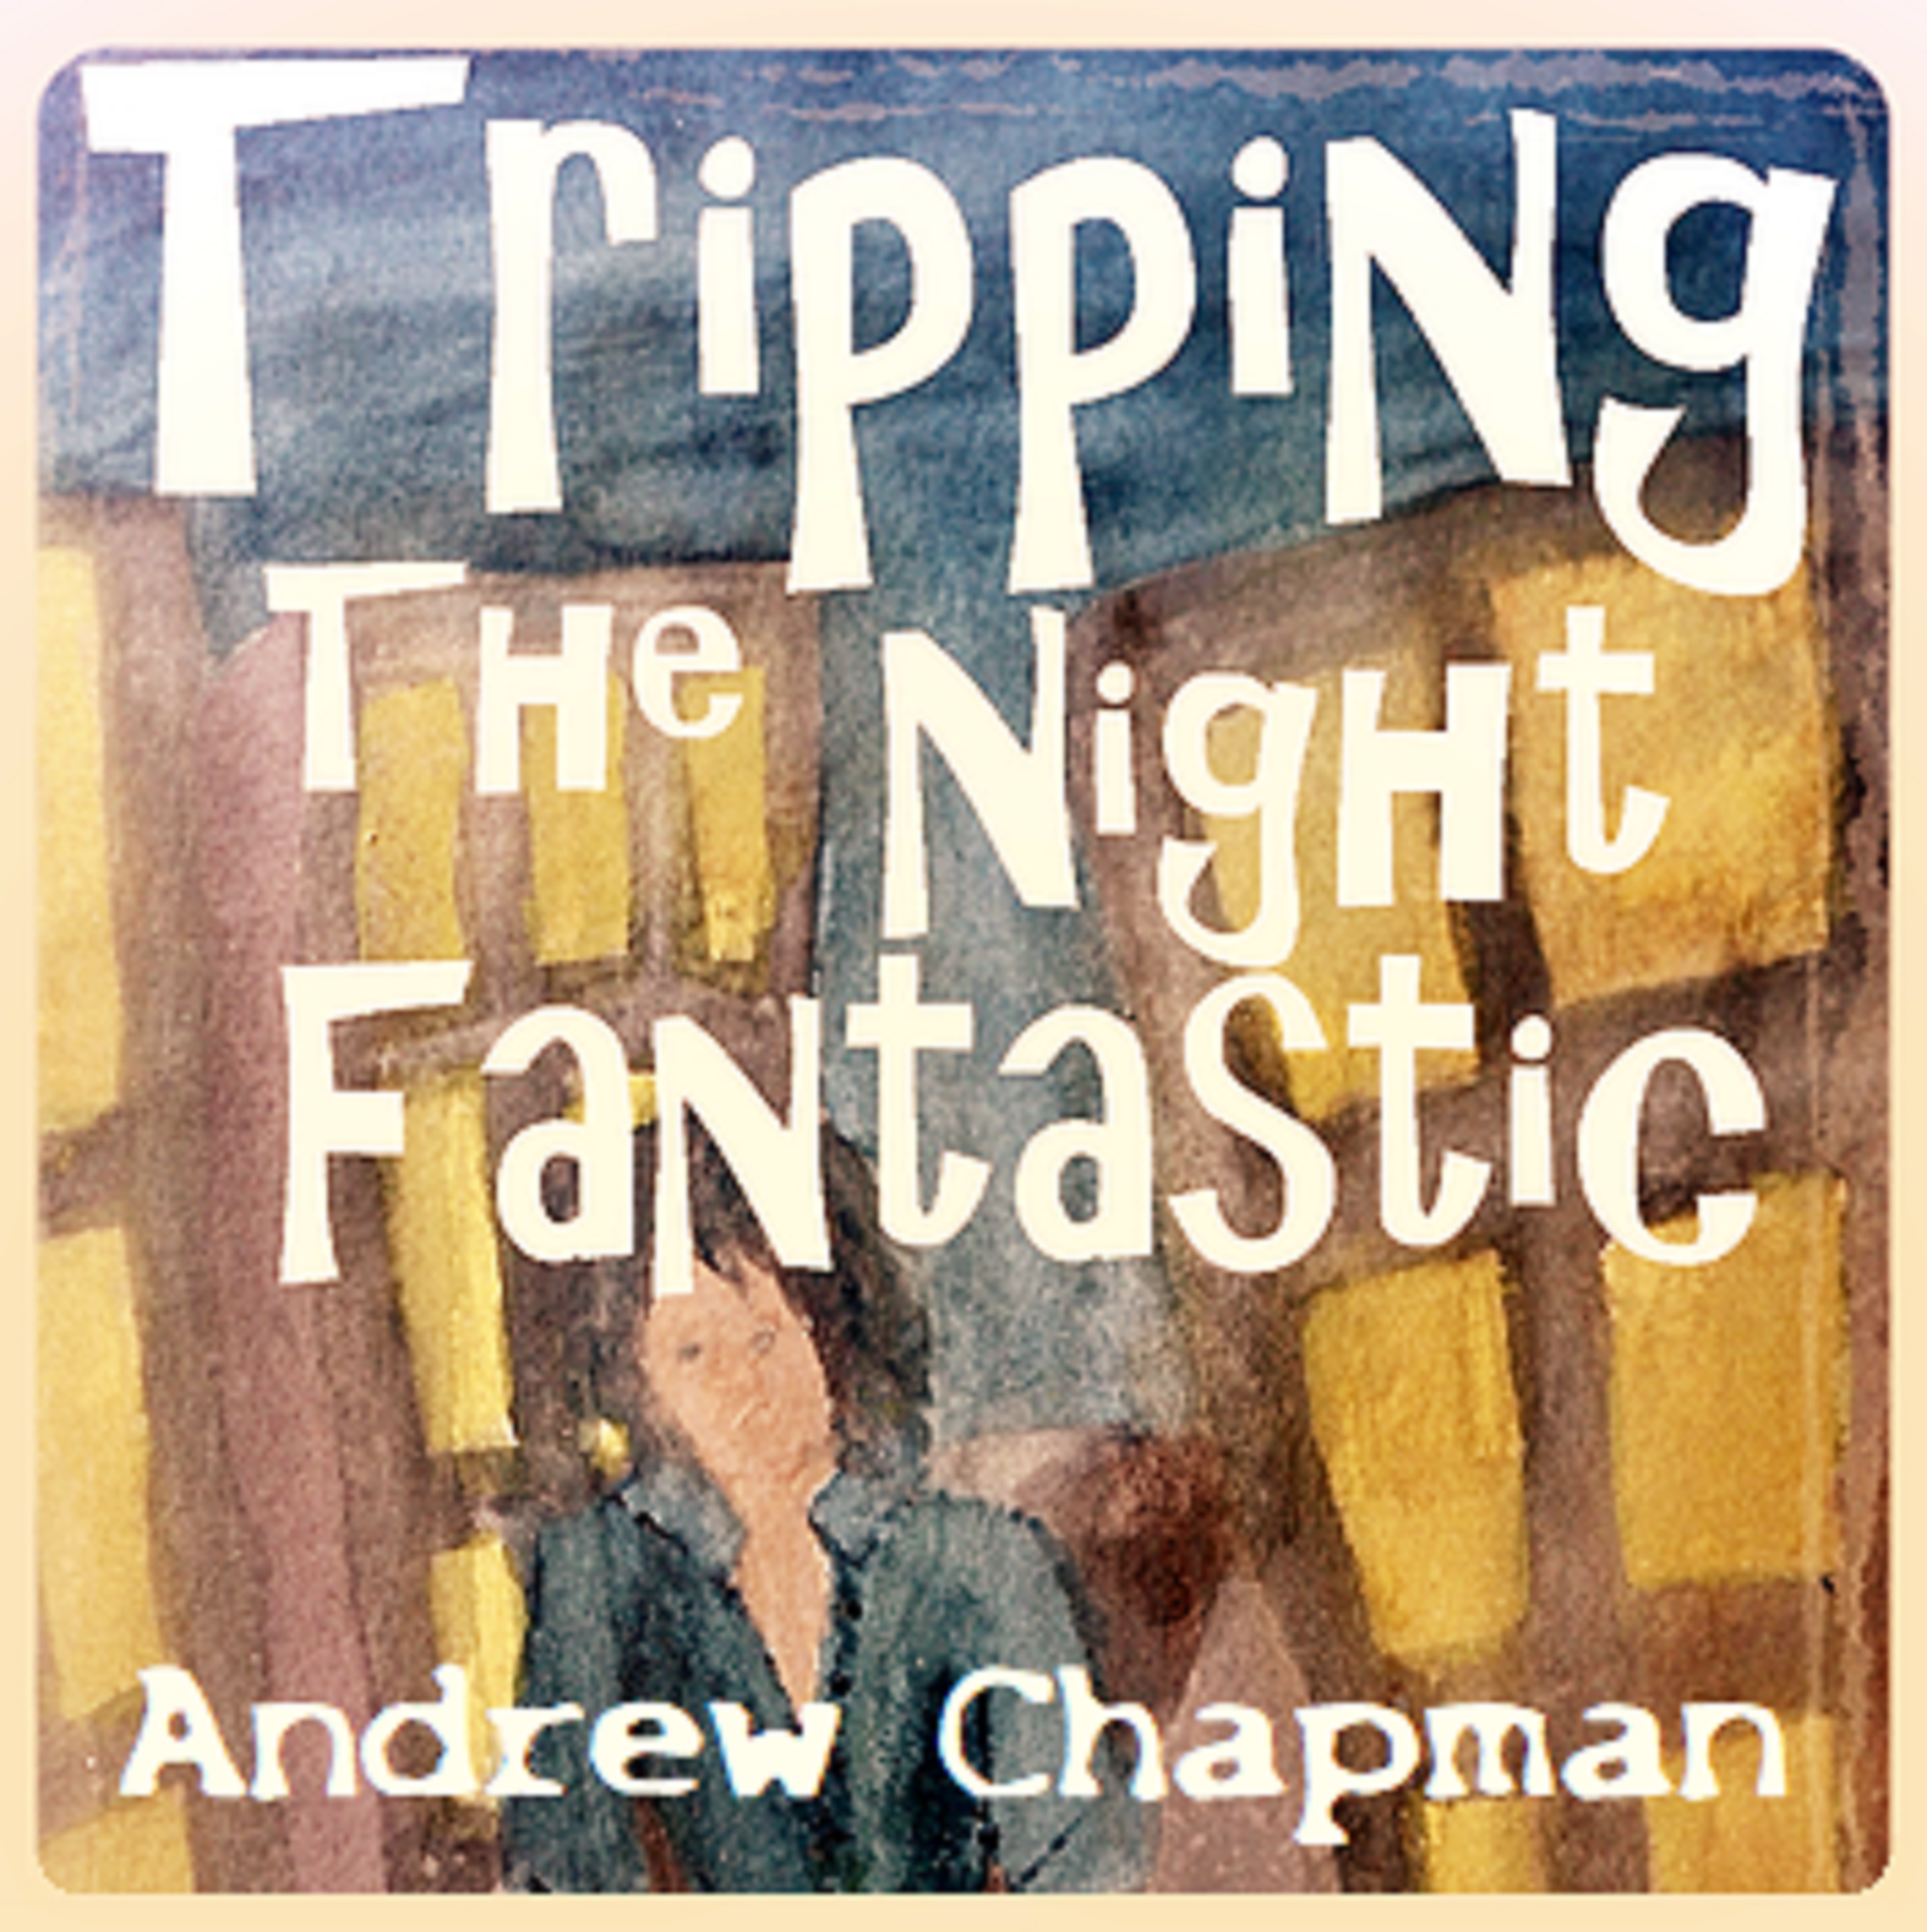 Tripping Audible Cover.png